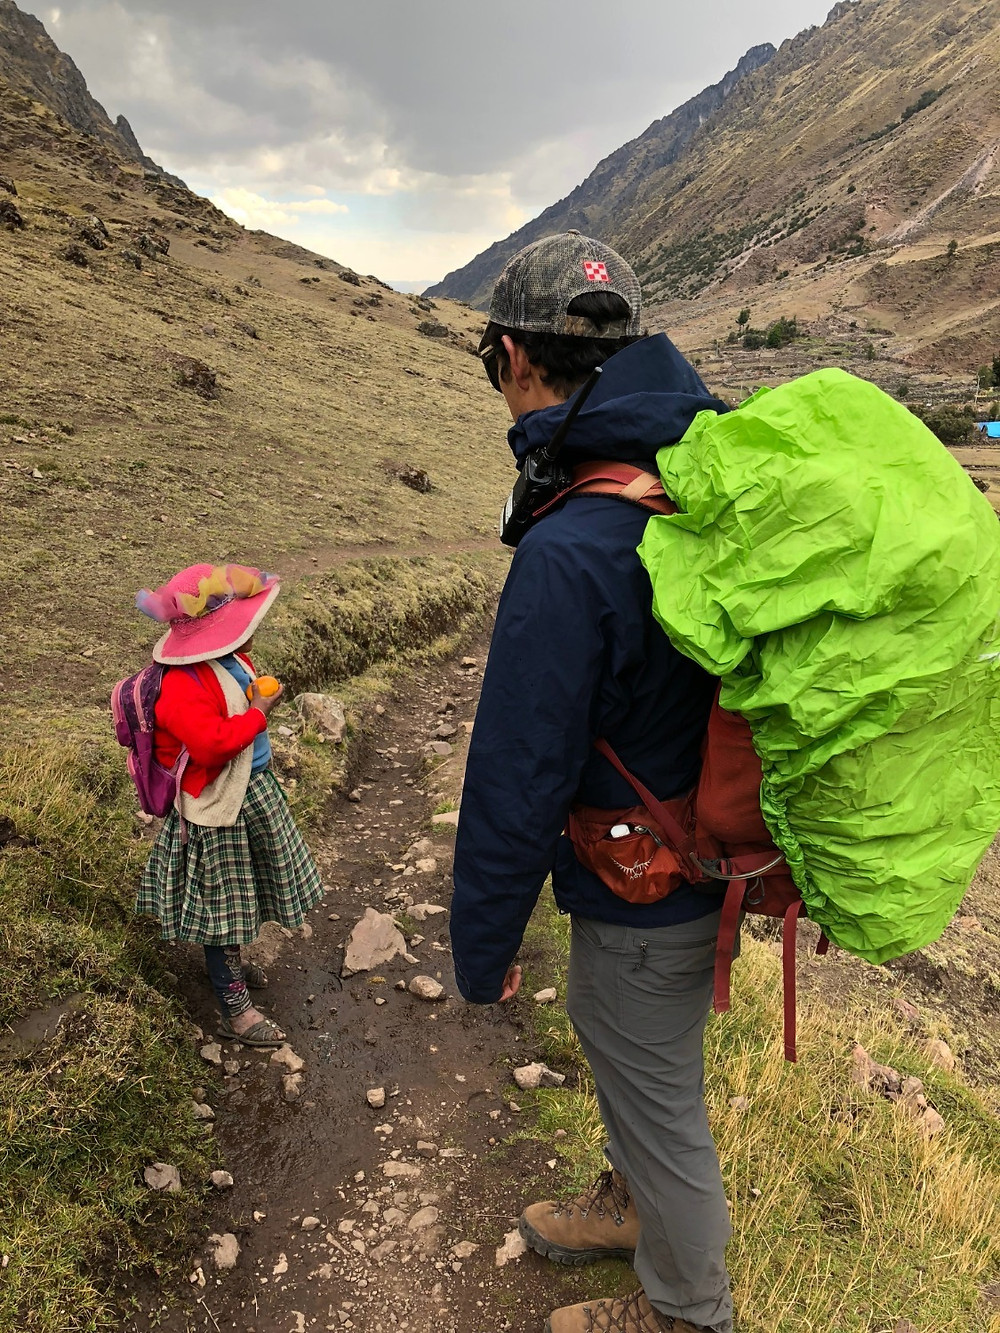 An Explora guide stopping to chat with a Quechua girl on one of our exploration hikes - Photo: Jen Stover, Paradox Travel   Read more about our experience with Explora at www.paradoxtravels.com